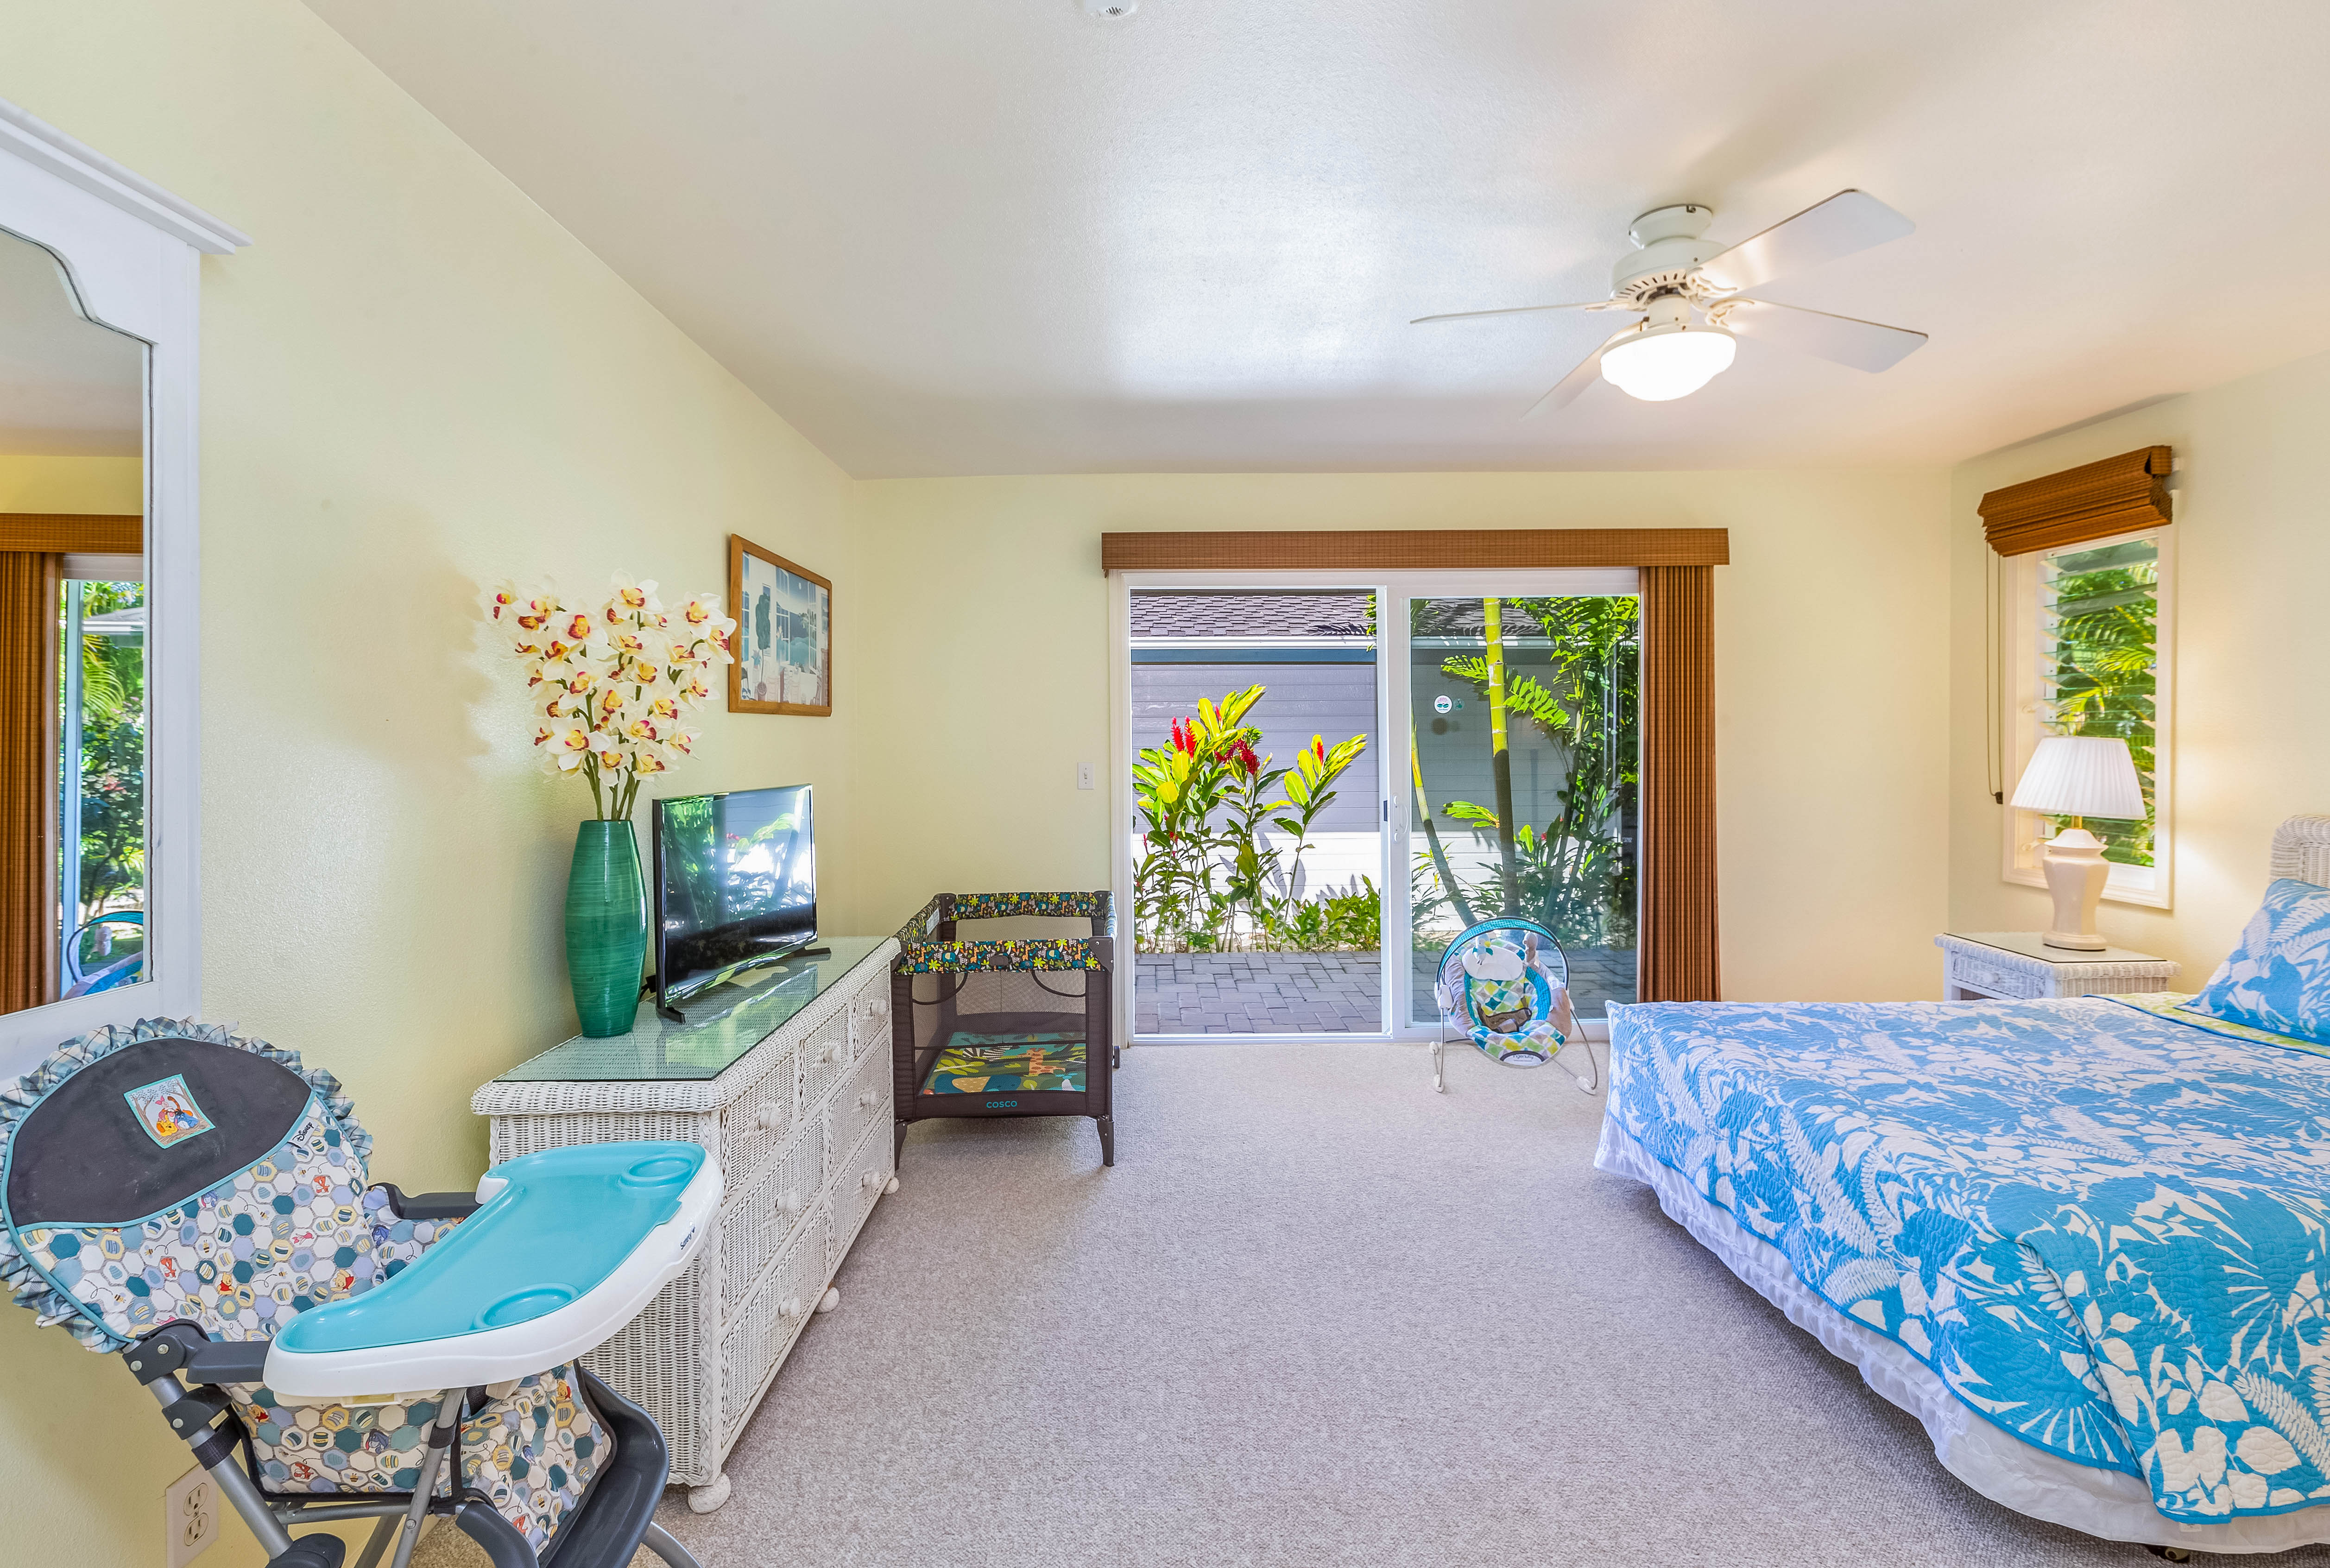 Princeville-vacations 4173 Liholiho Rd 3rd bedroom baby equipment